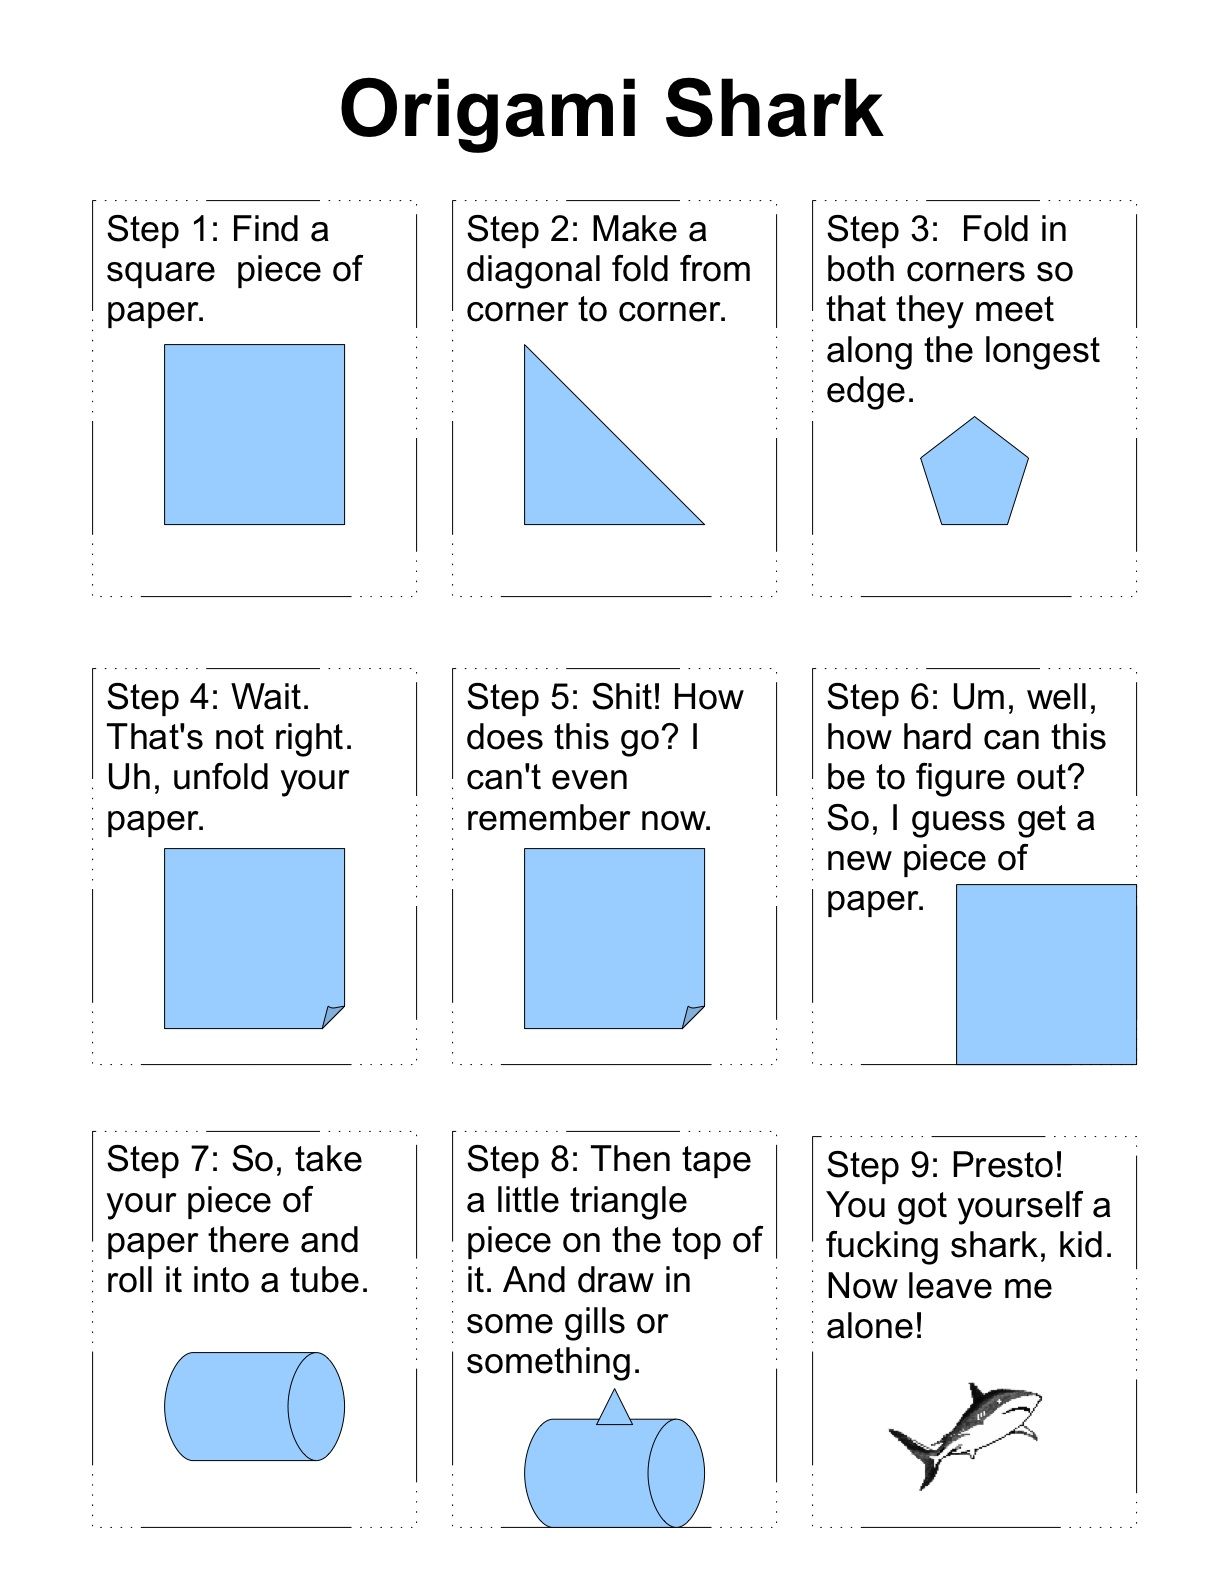 shark origami instructions